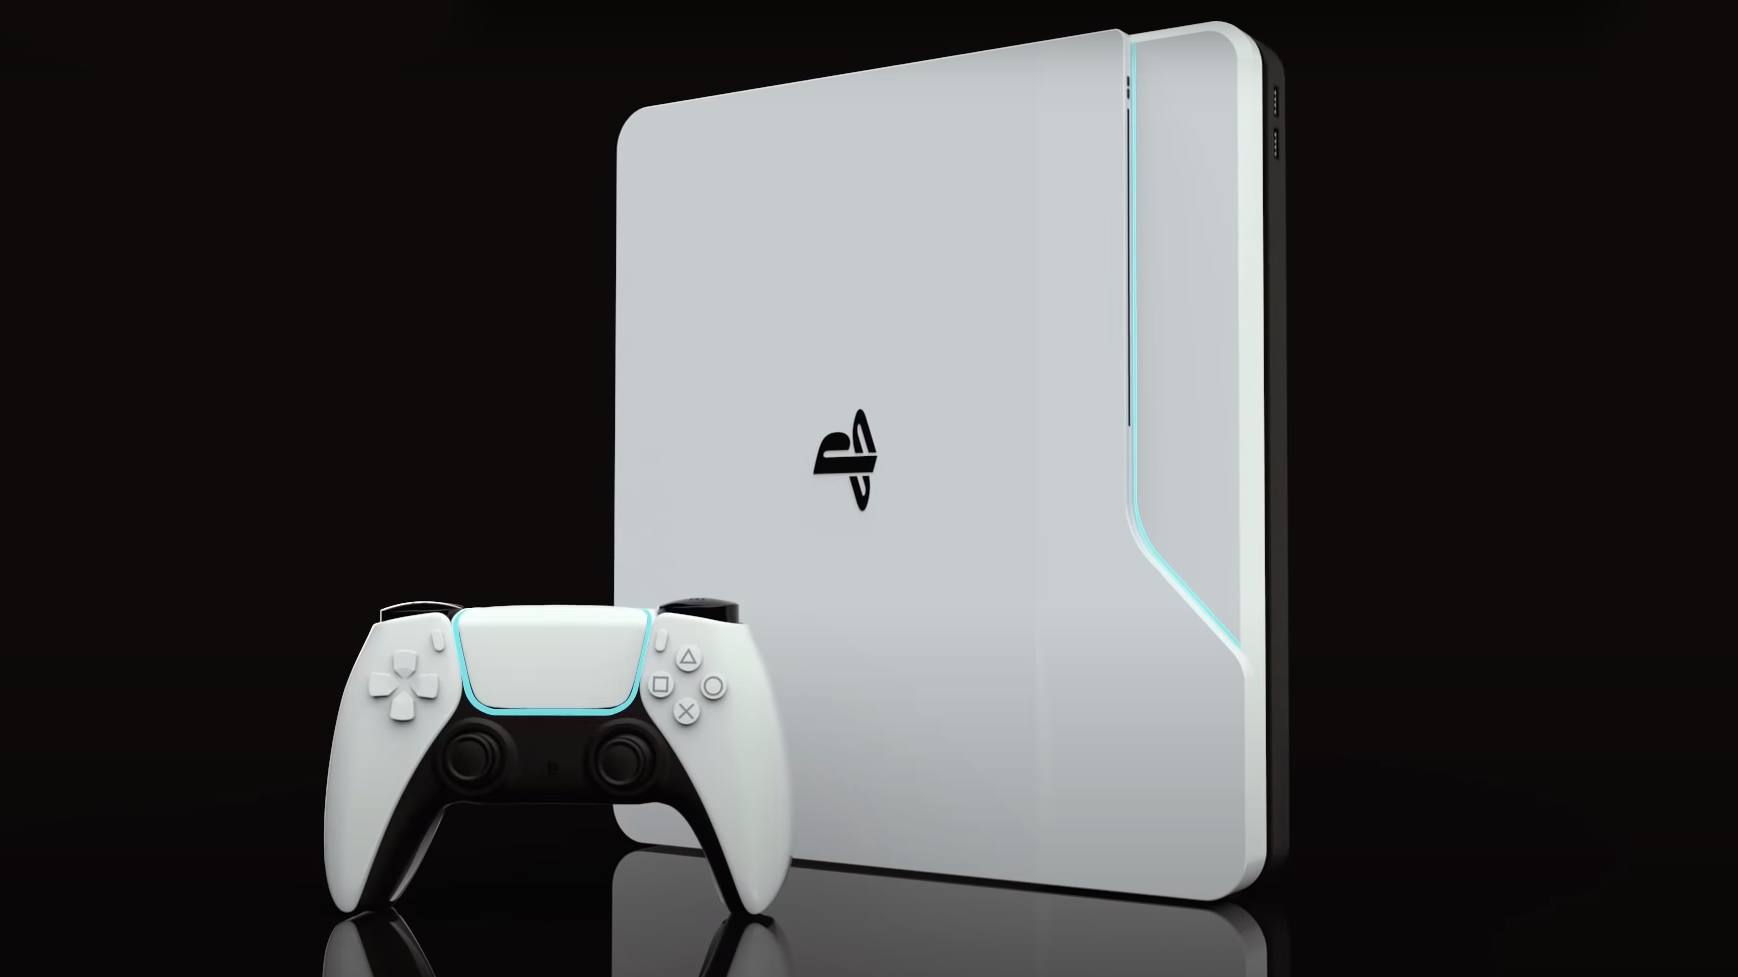 PlayStation 5 Review 2020